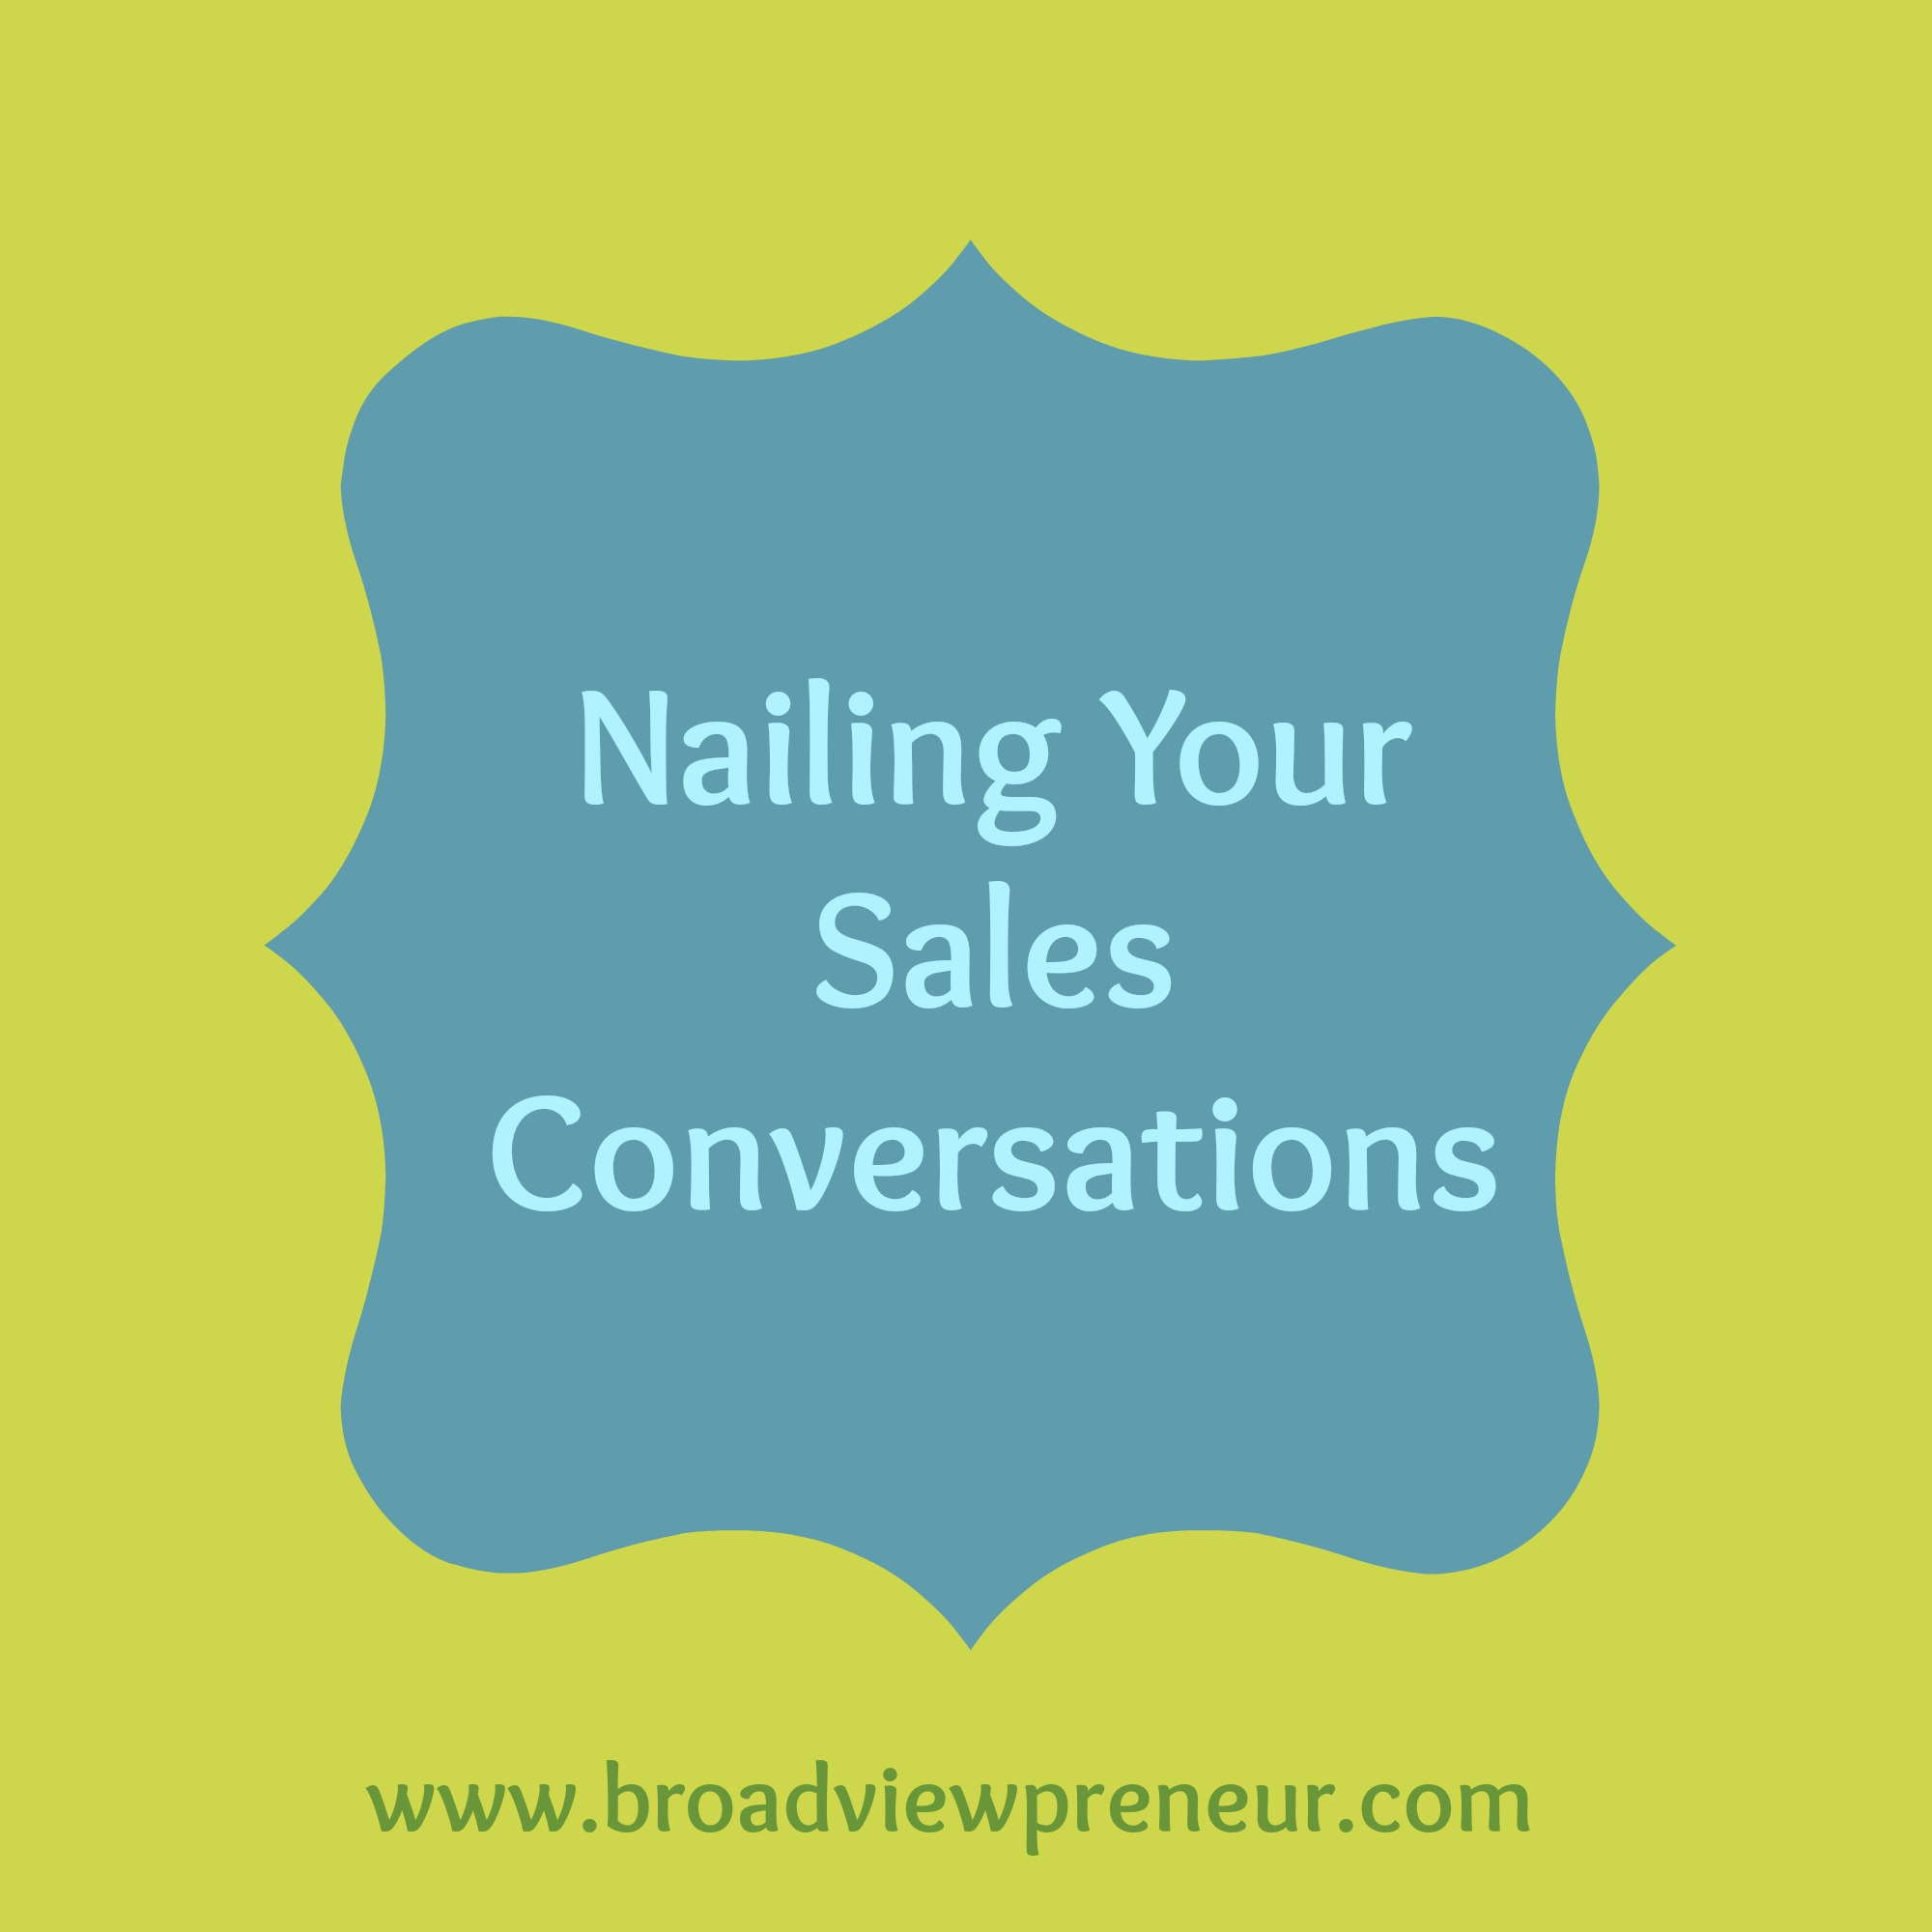 Nailing Your Sales Convesations